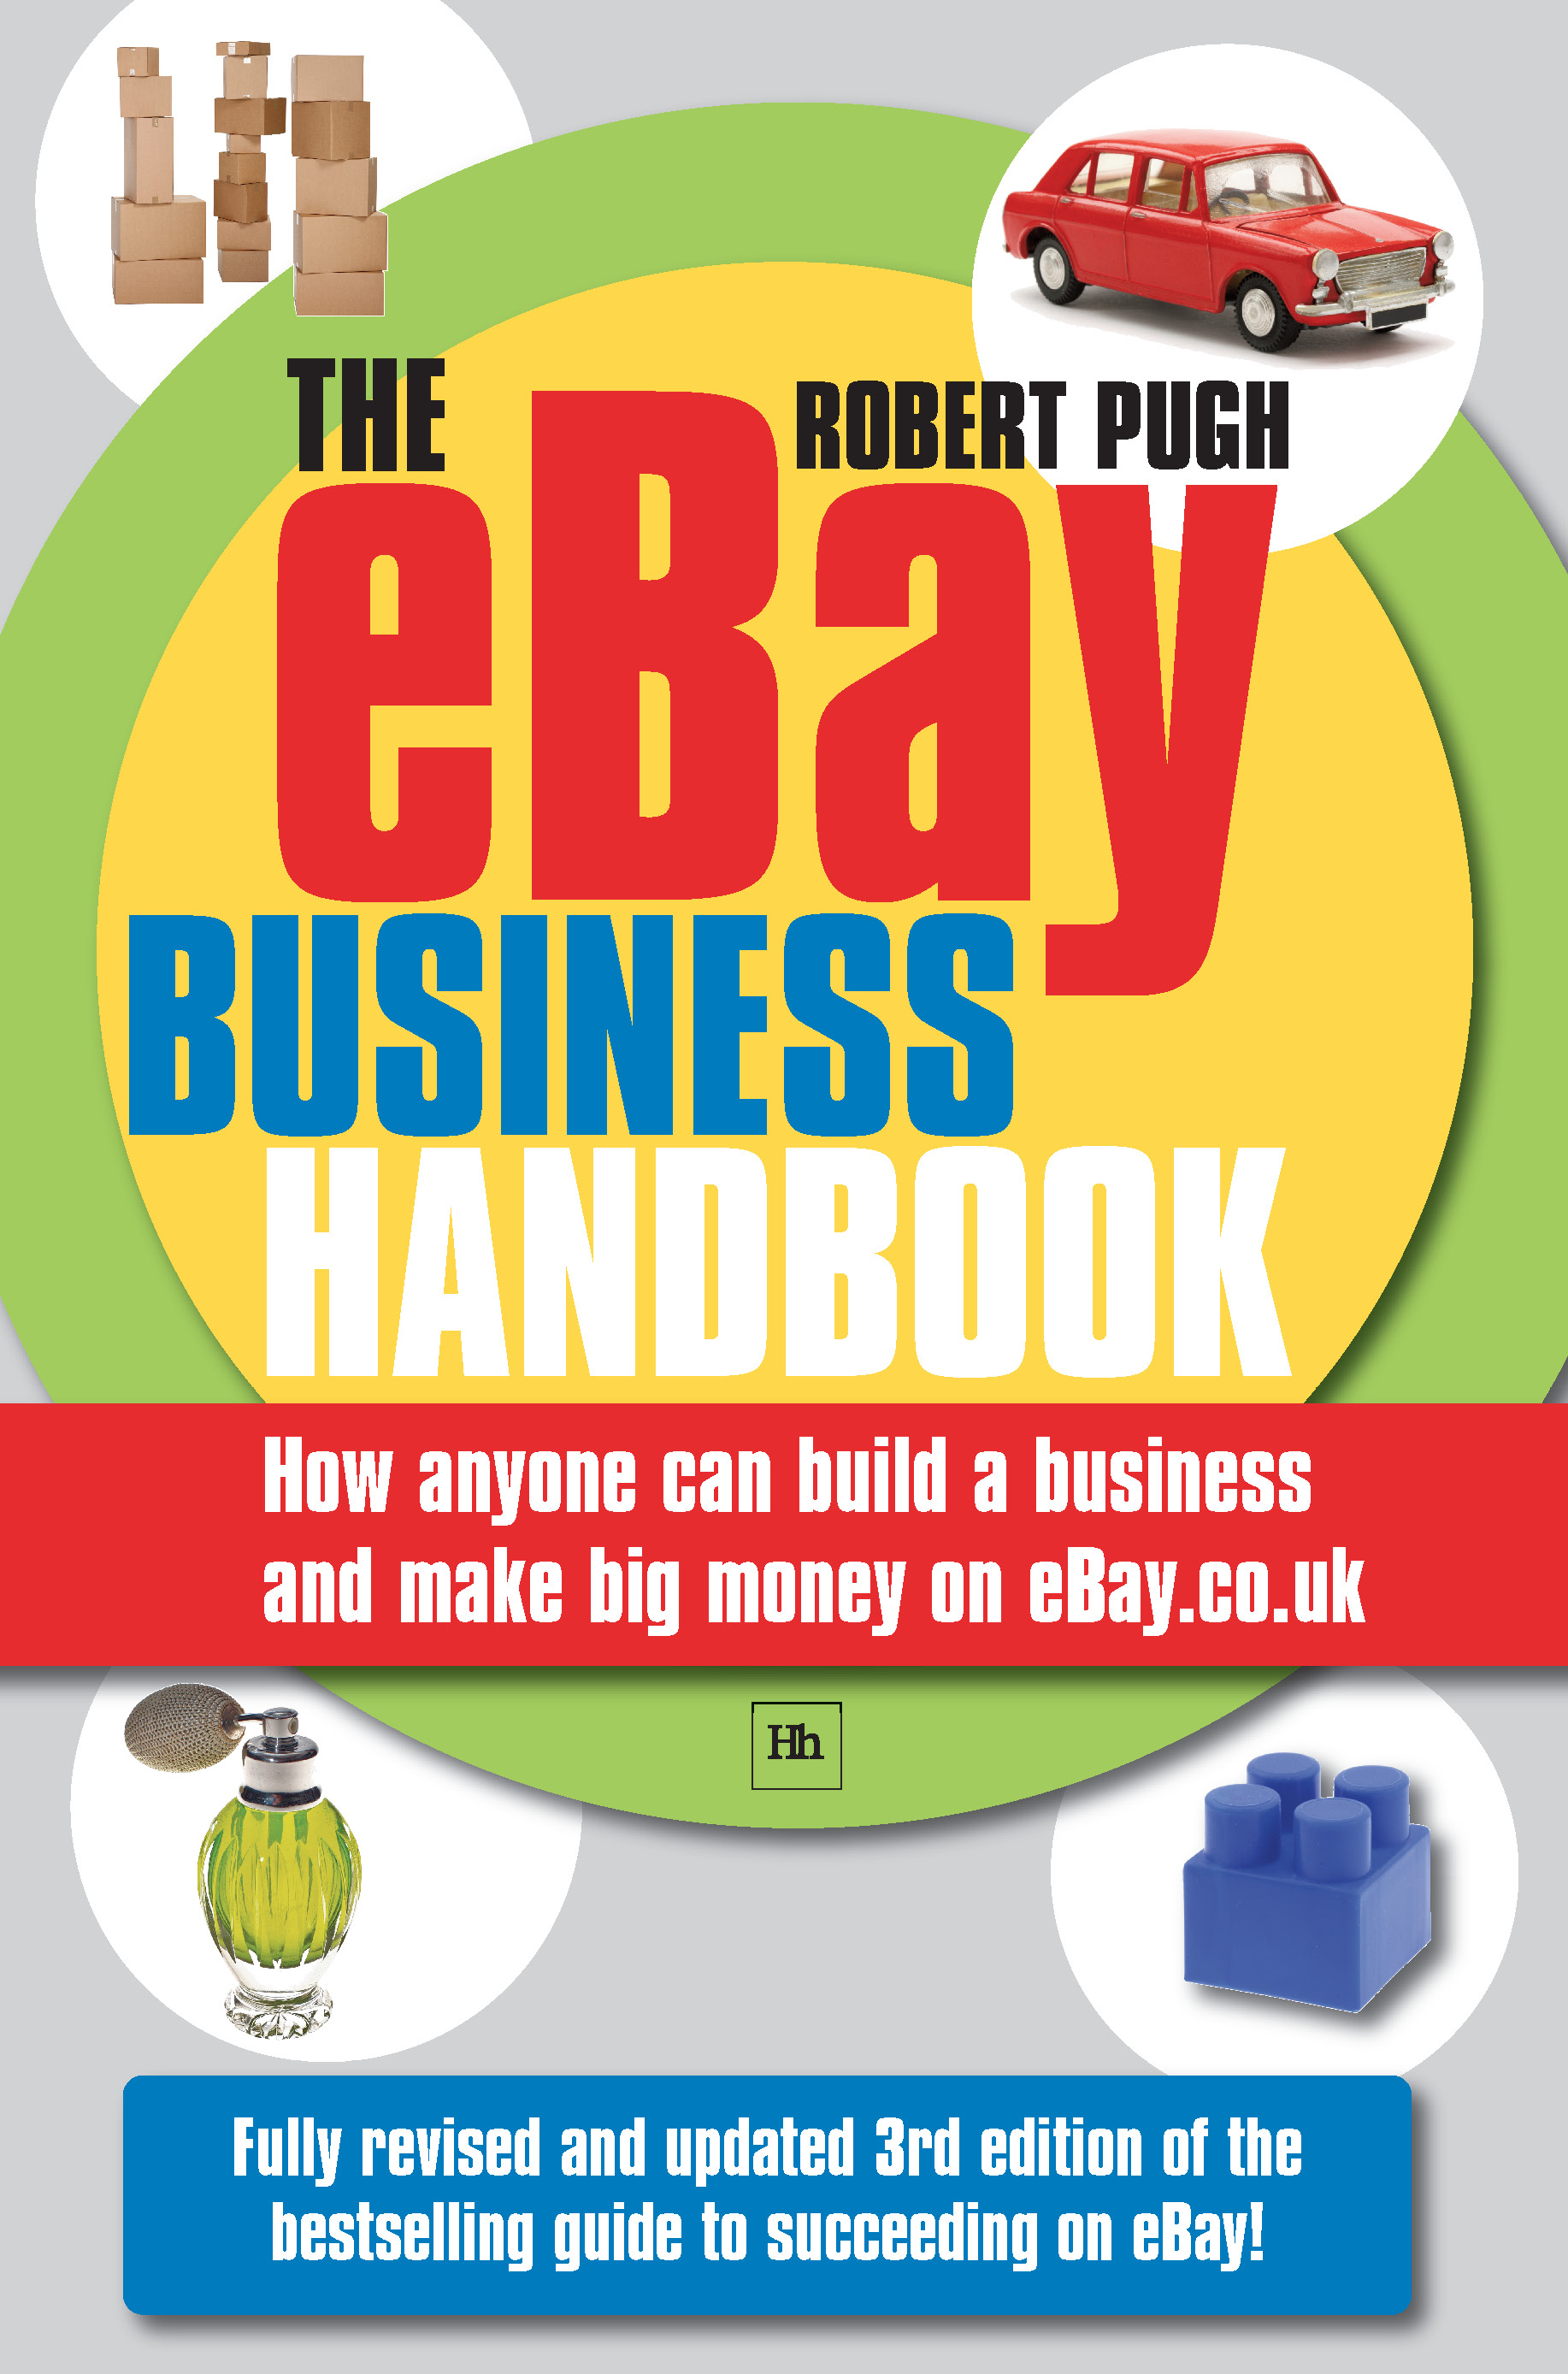 Download Ebook The eBay Business Handbook (3rd ed.) by Pugh Robert Pdf